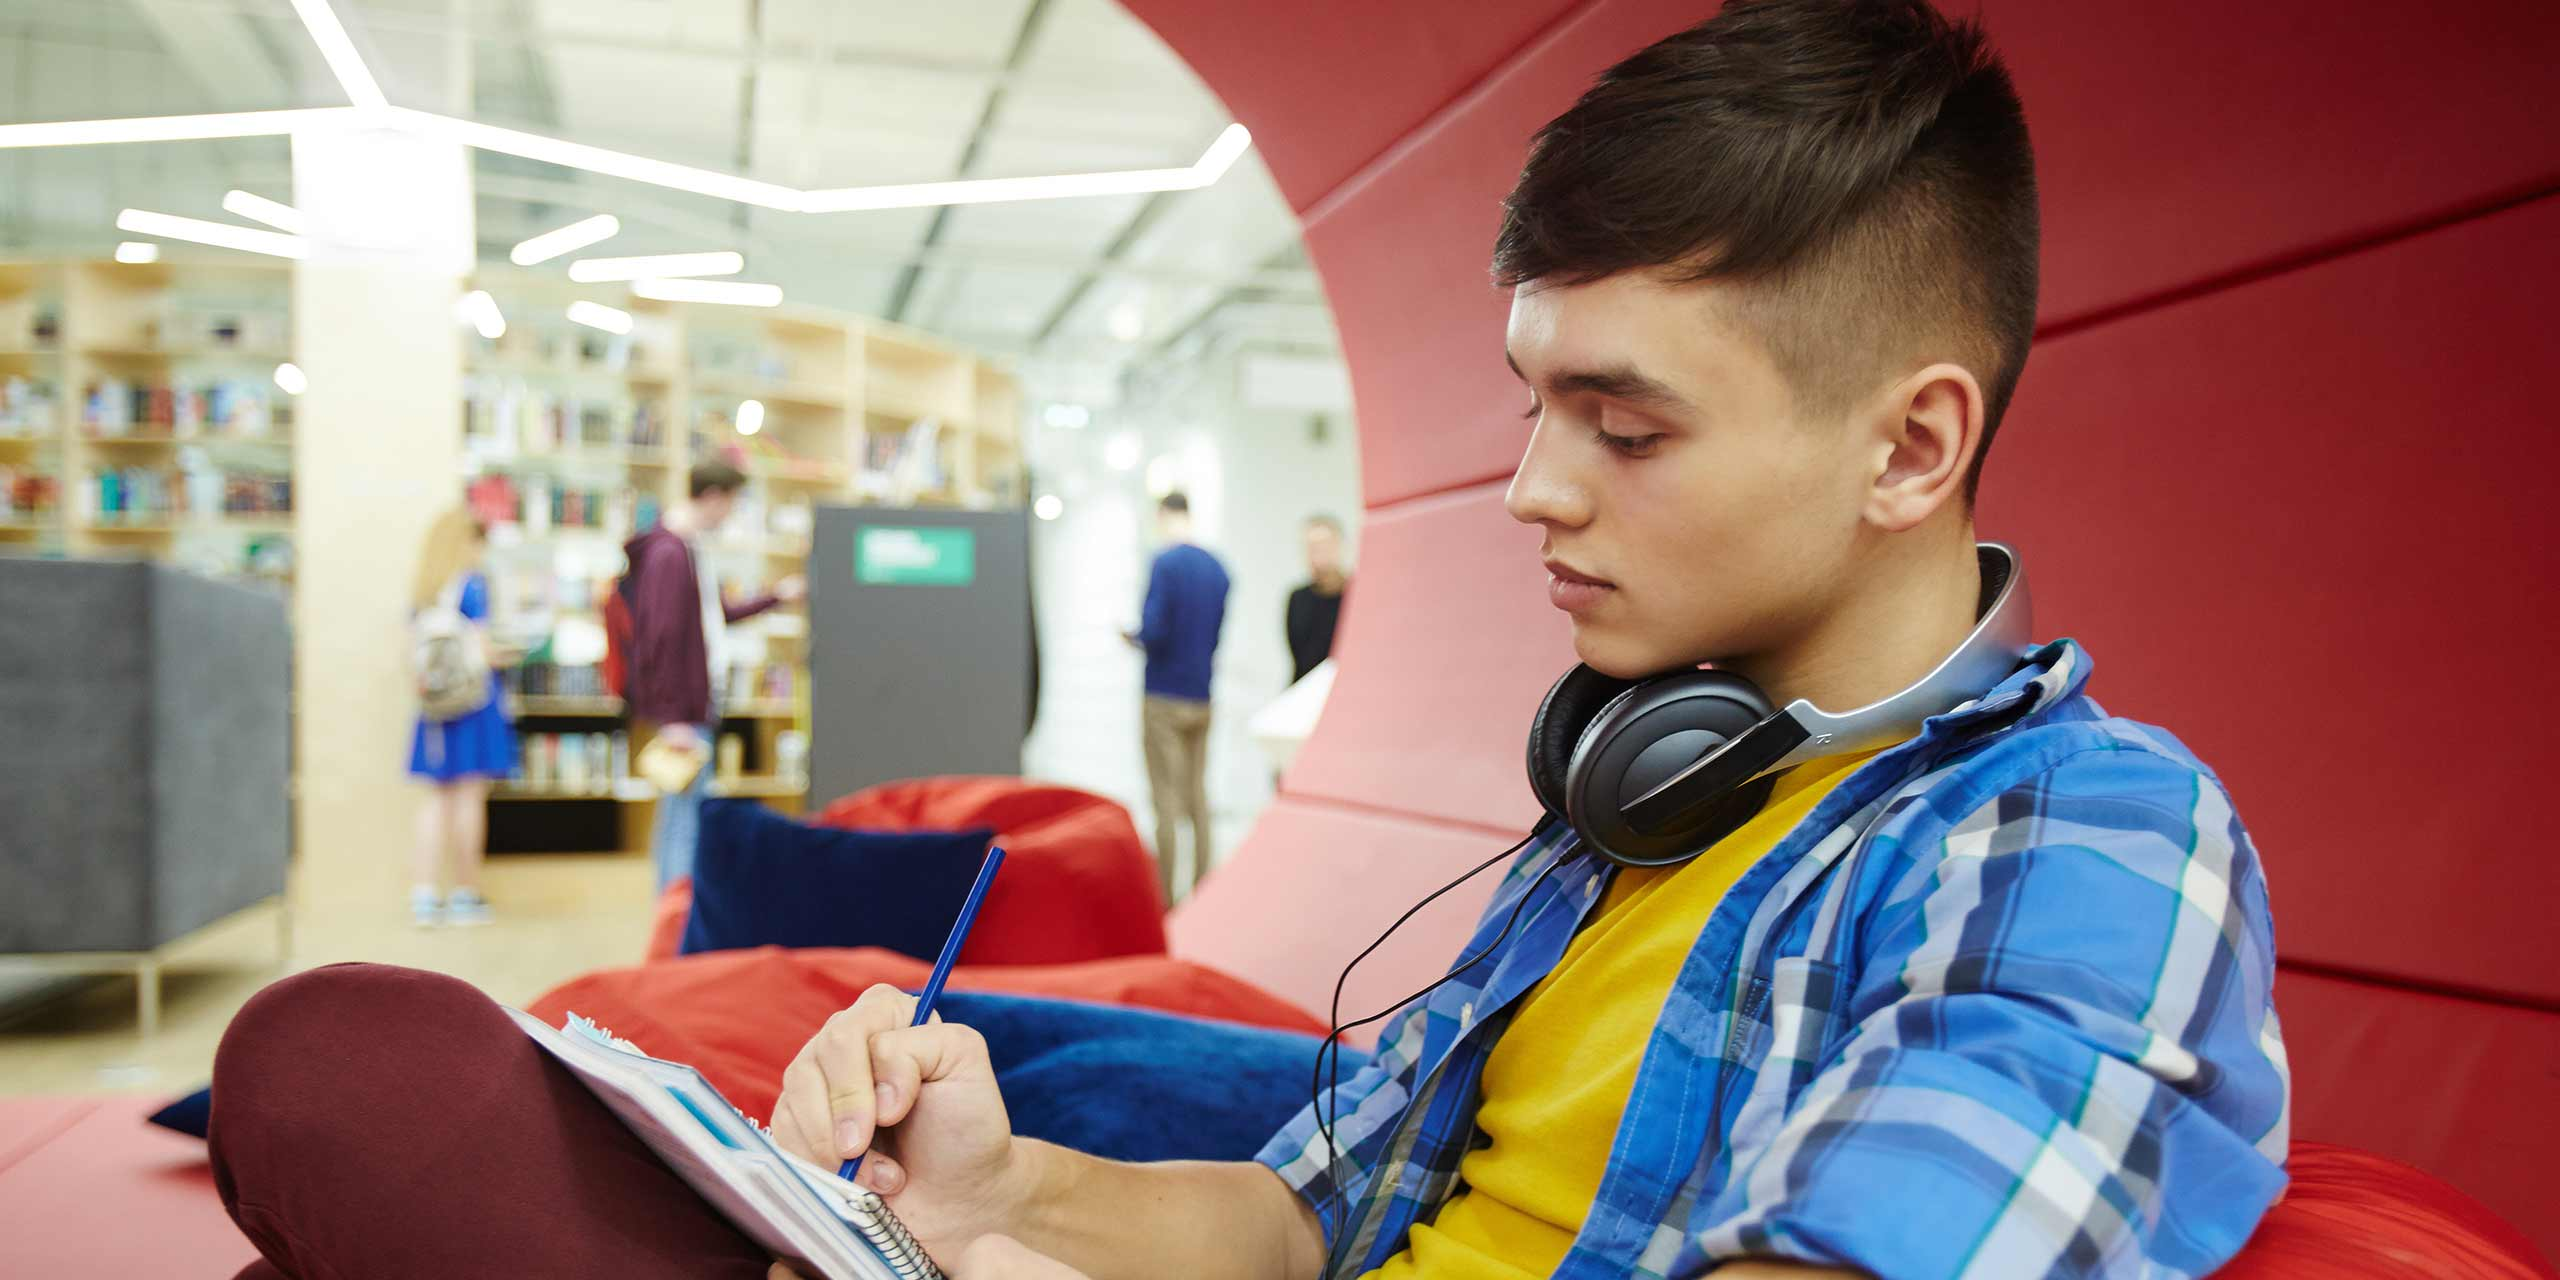 How to Teach Generation Z in the Classroom